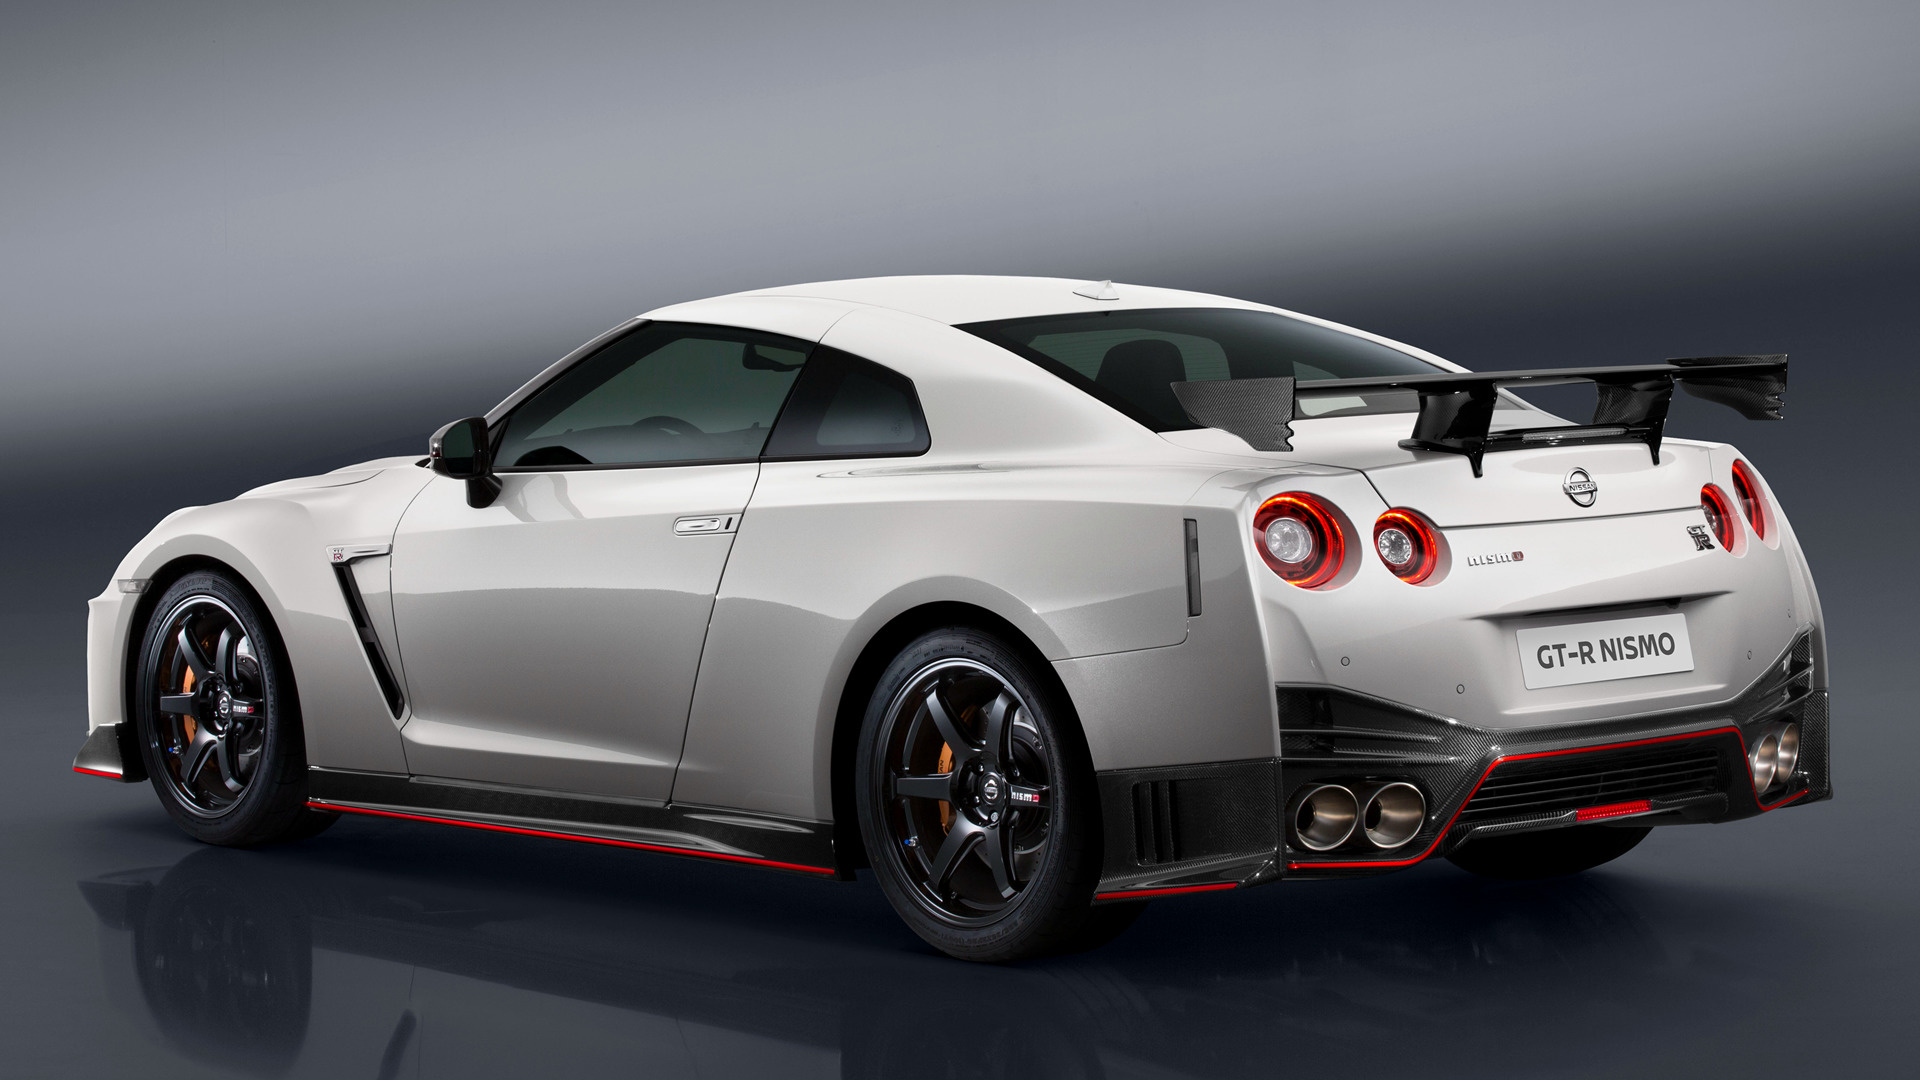 2017 Nissan Gt R Nismo Wallpapers Hd Images: 2016 Nissan GT-R Nismo - Wallpapers And HD Images